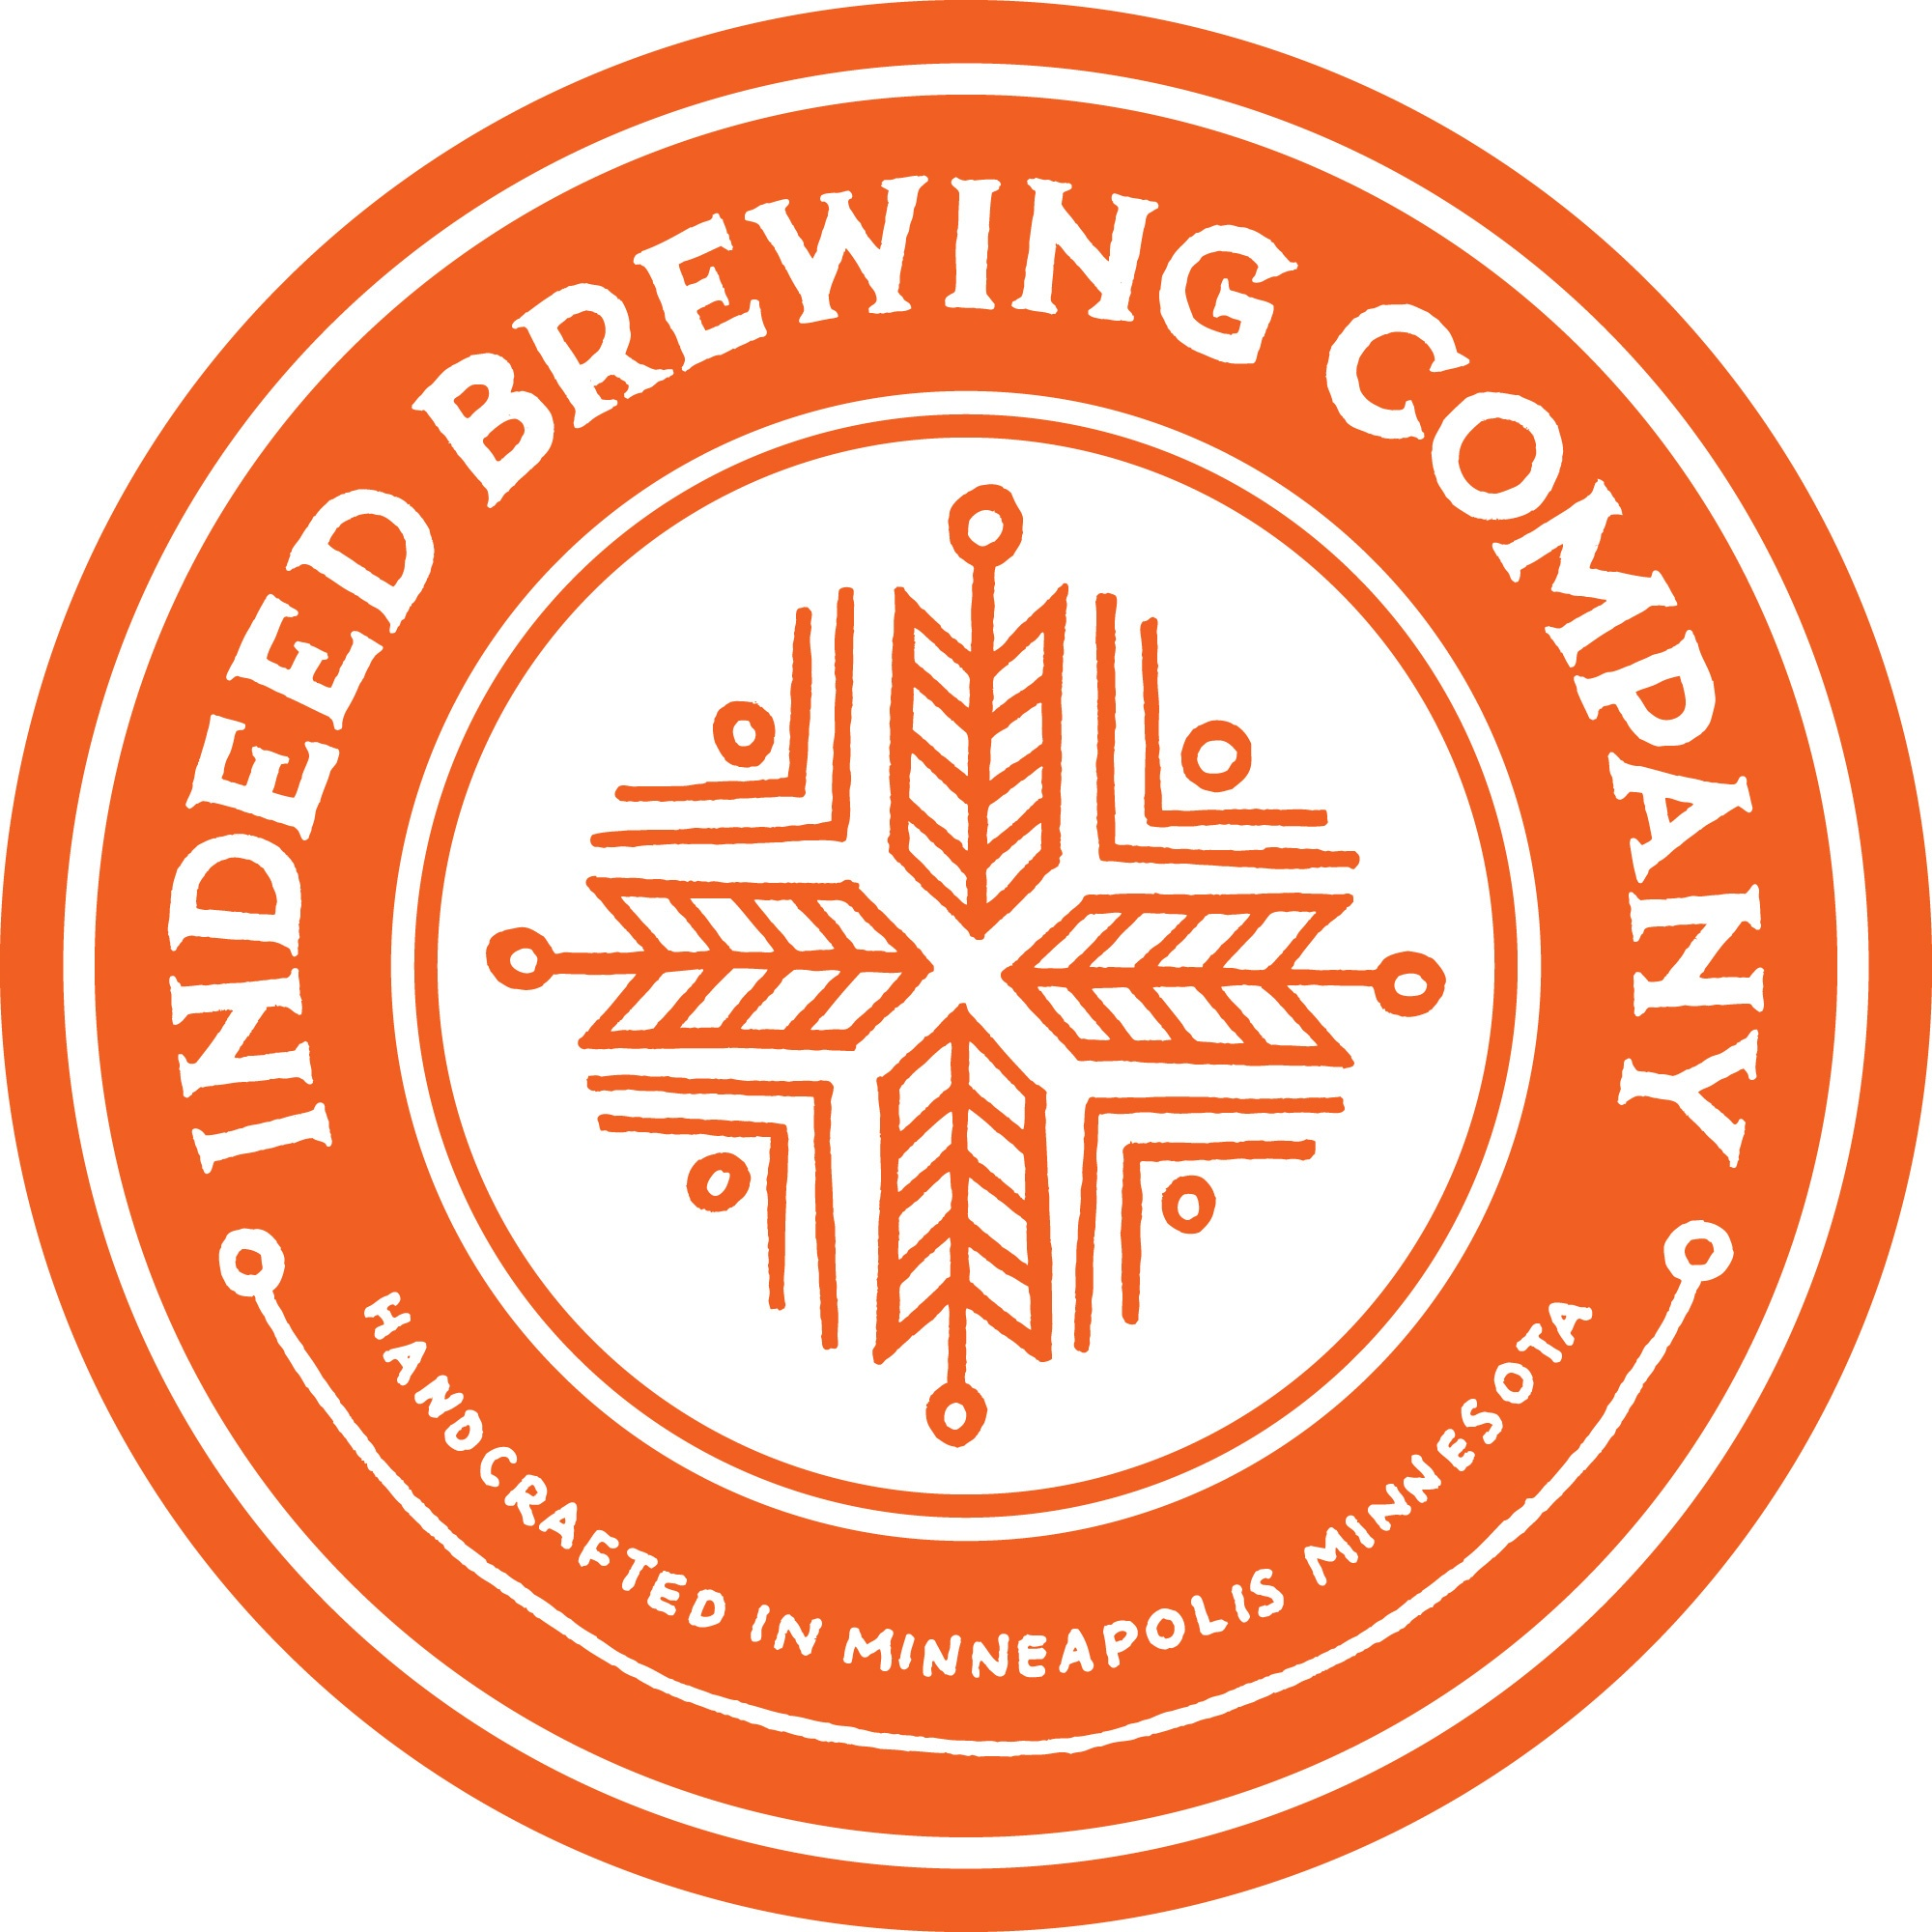 indeed_brewing